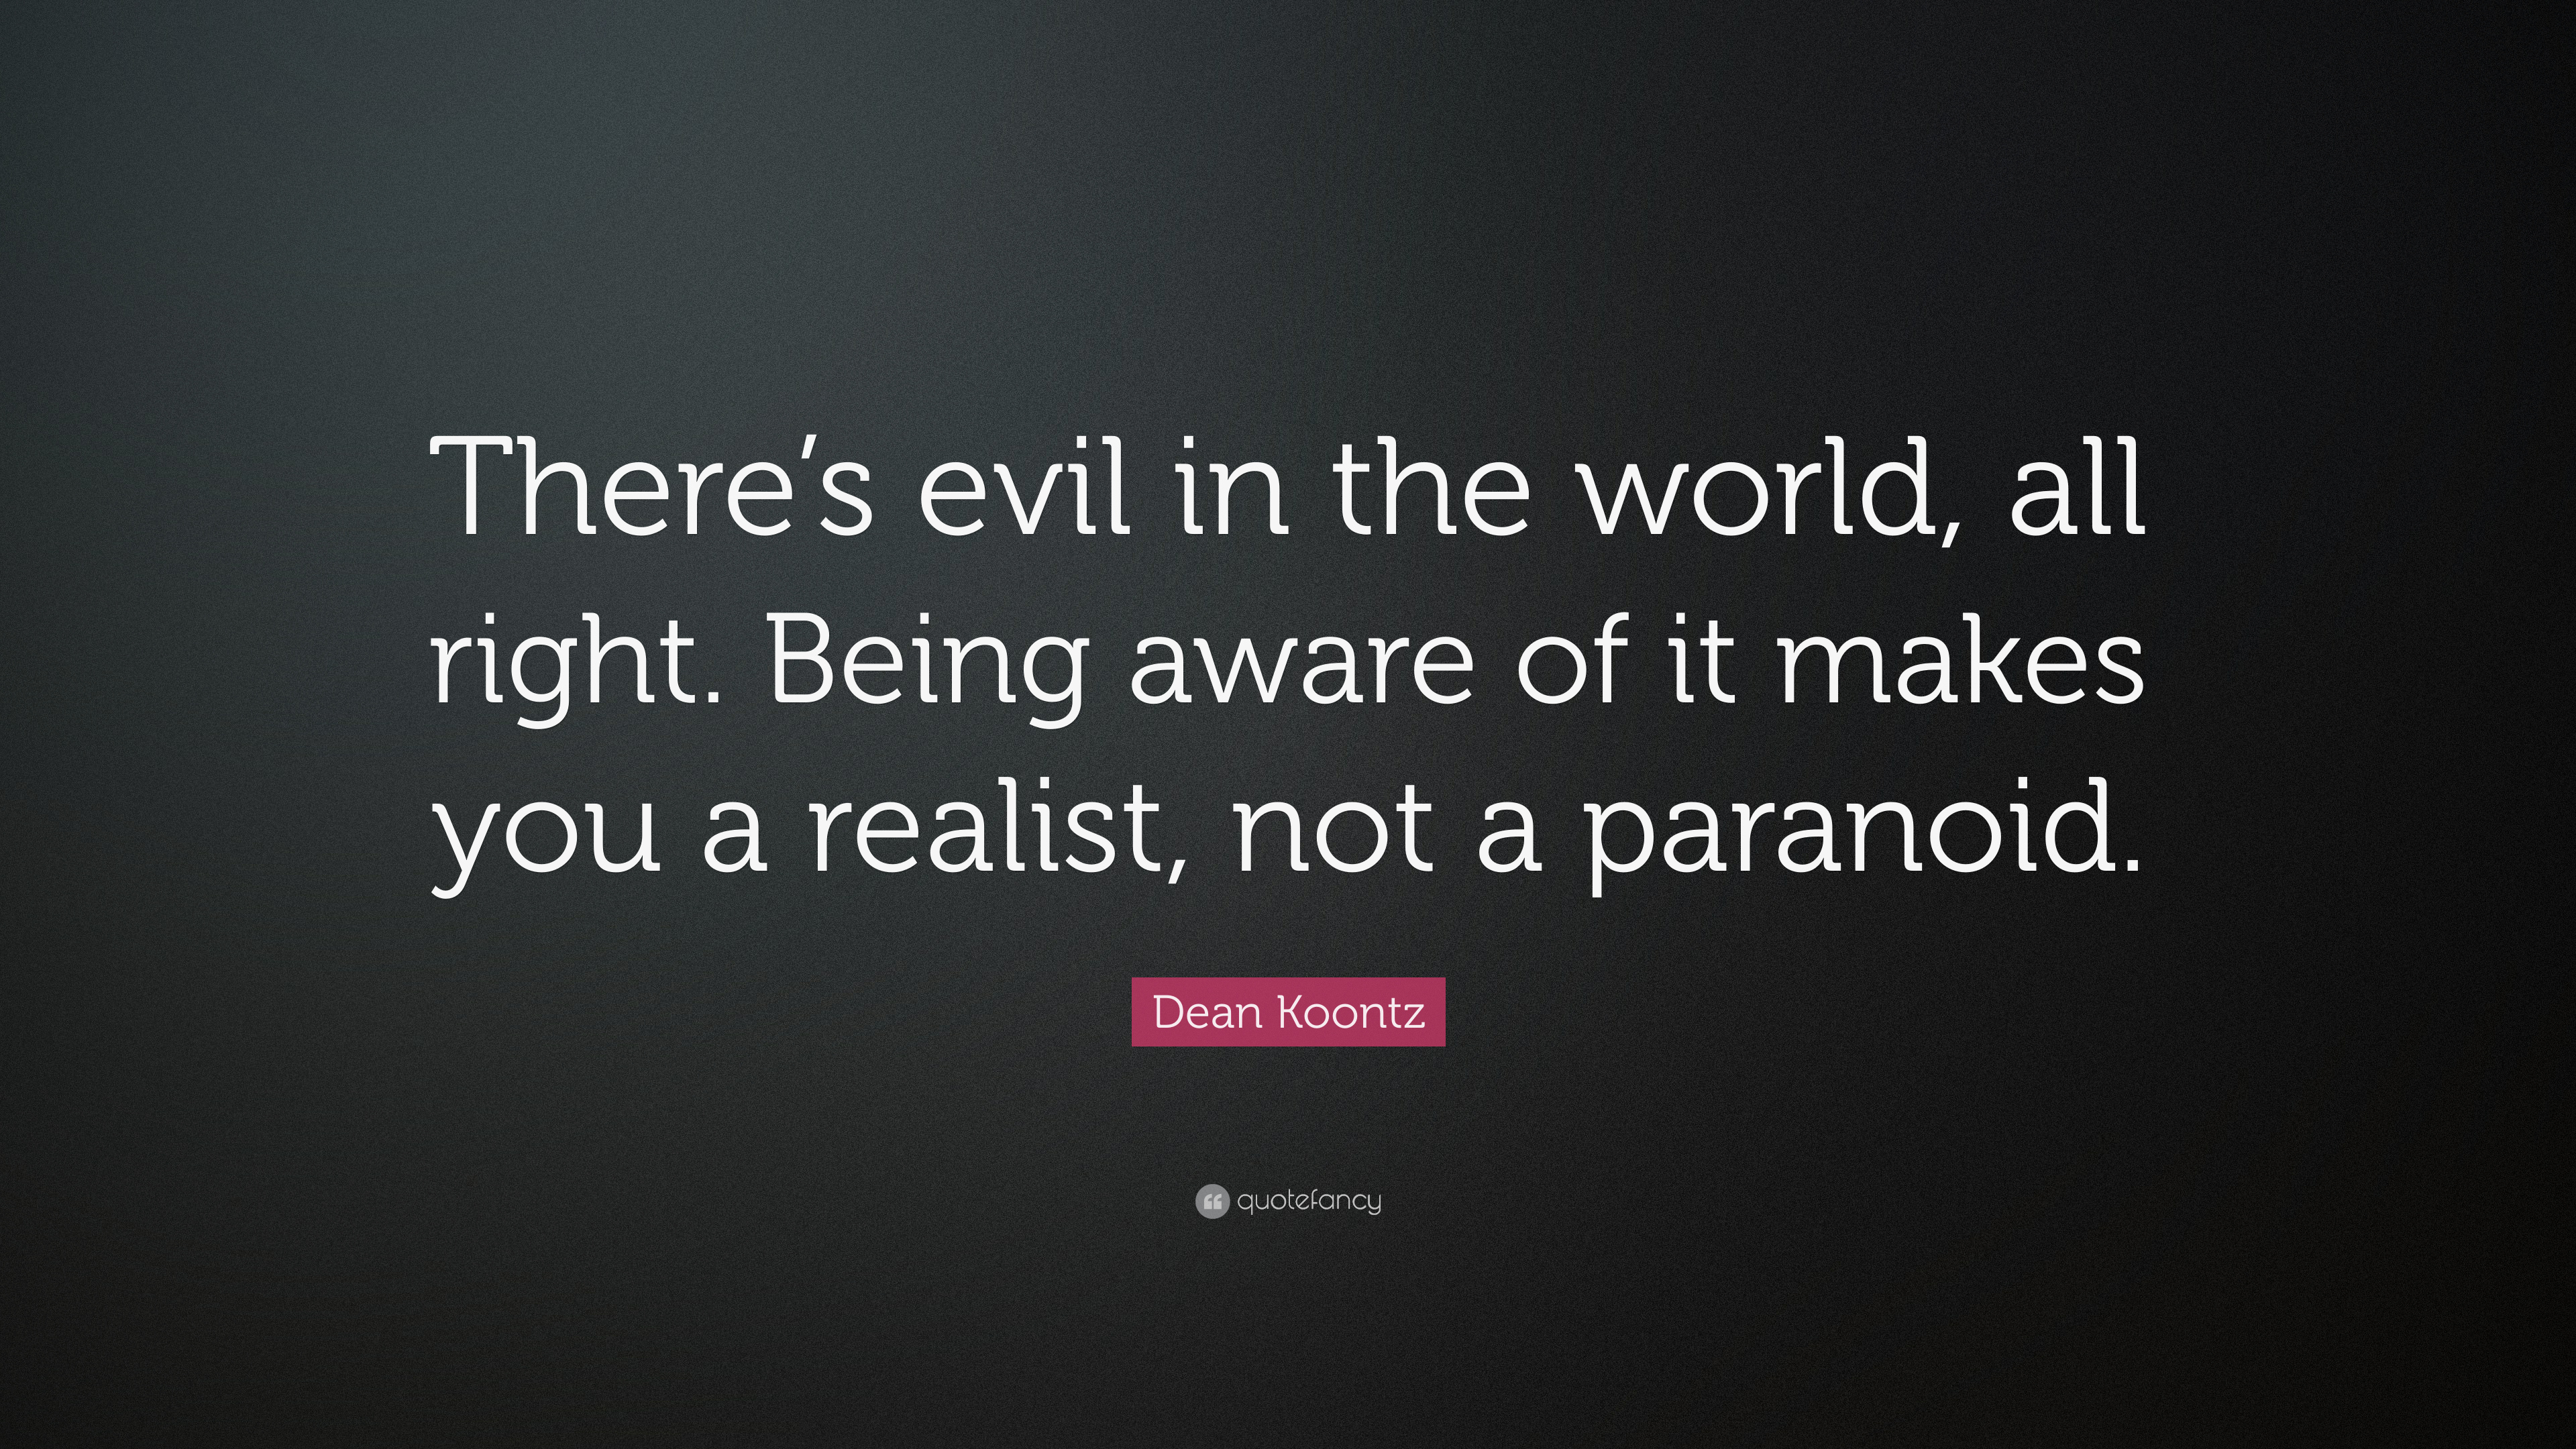 3610910-Dean-Koontz-Quote-There-s-evil-in-the-world-all-right-Being-aware.jpg